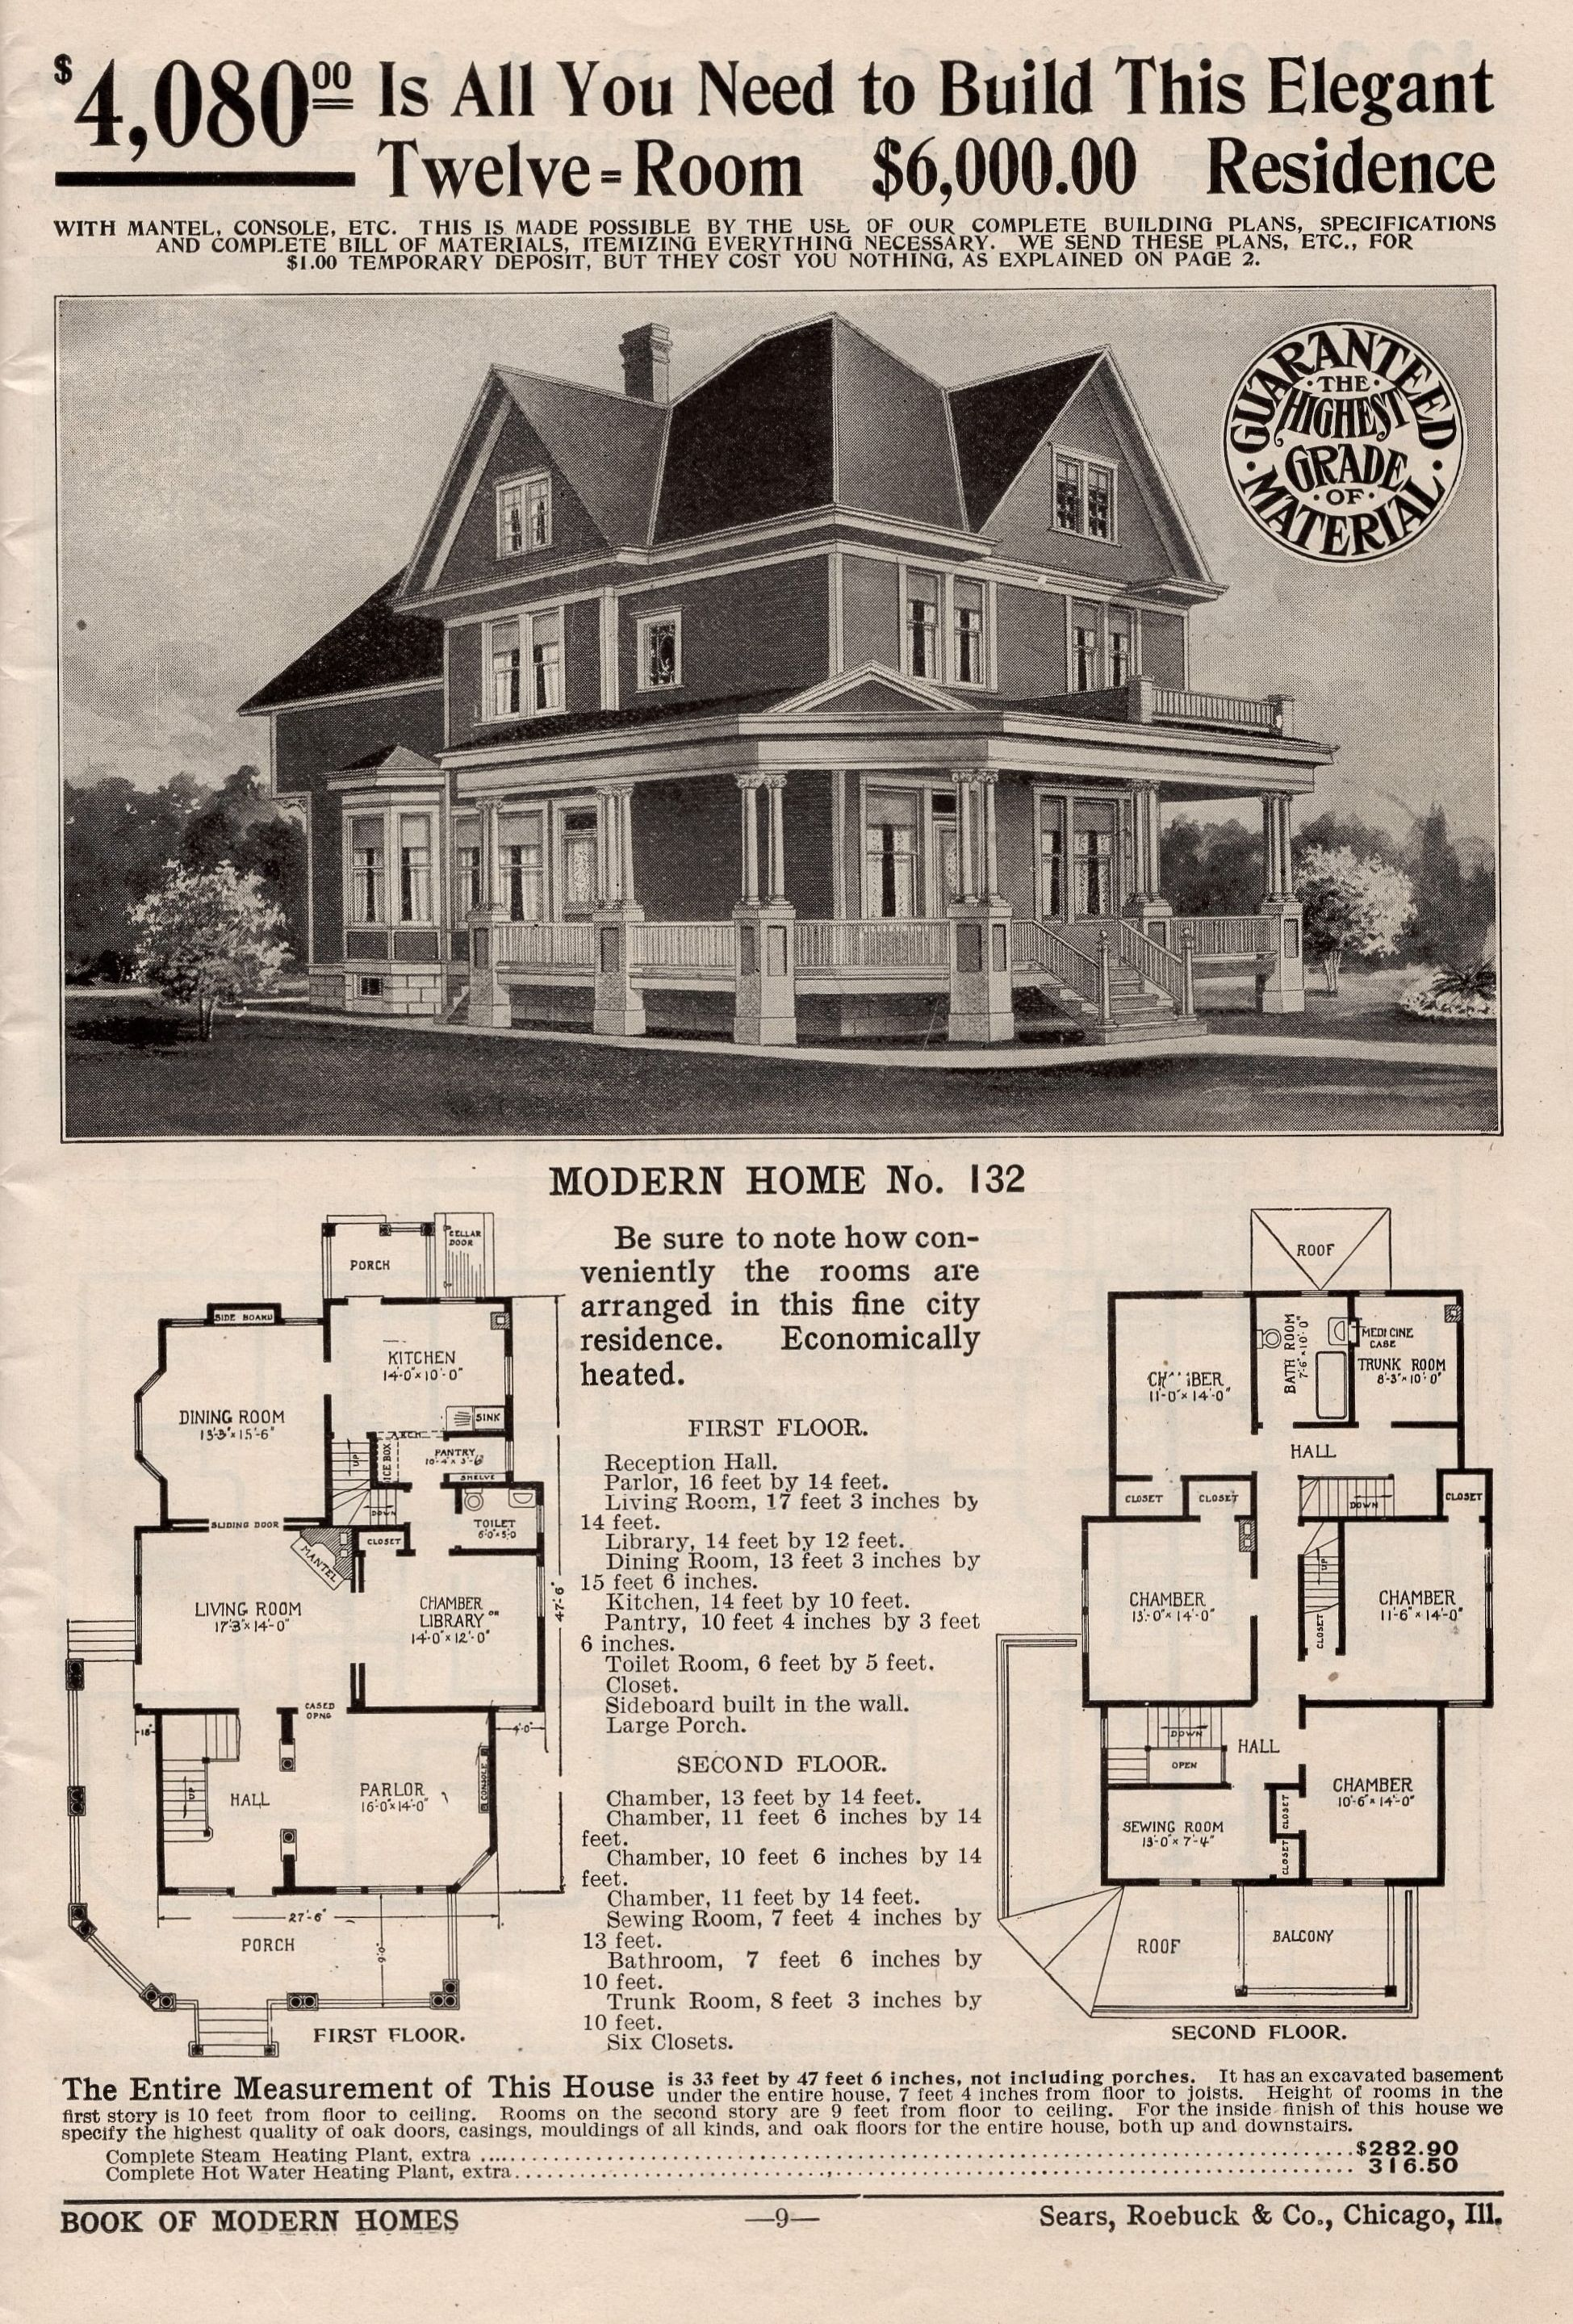 The Earliest Sears House Maybe Maybe Not Victorian House Plans Vintage House Plans House Plans